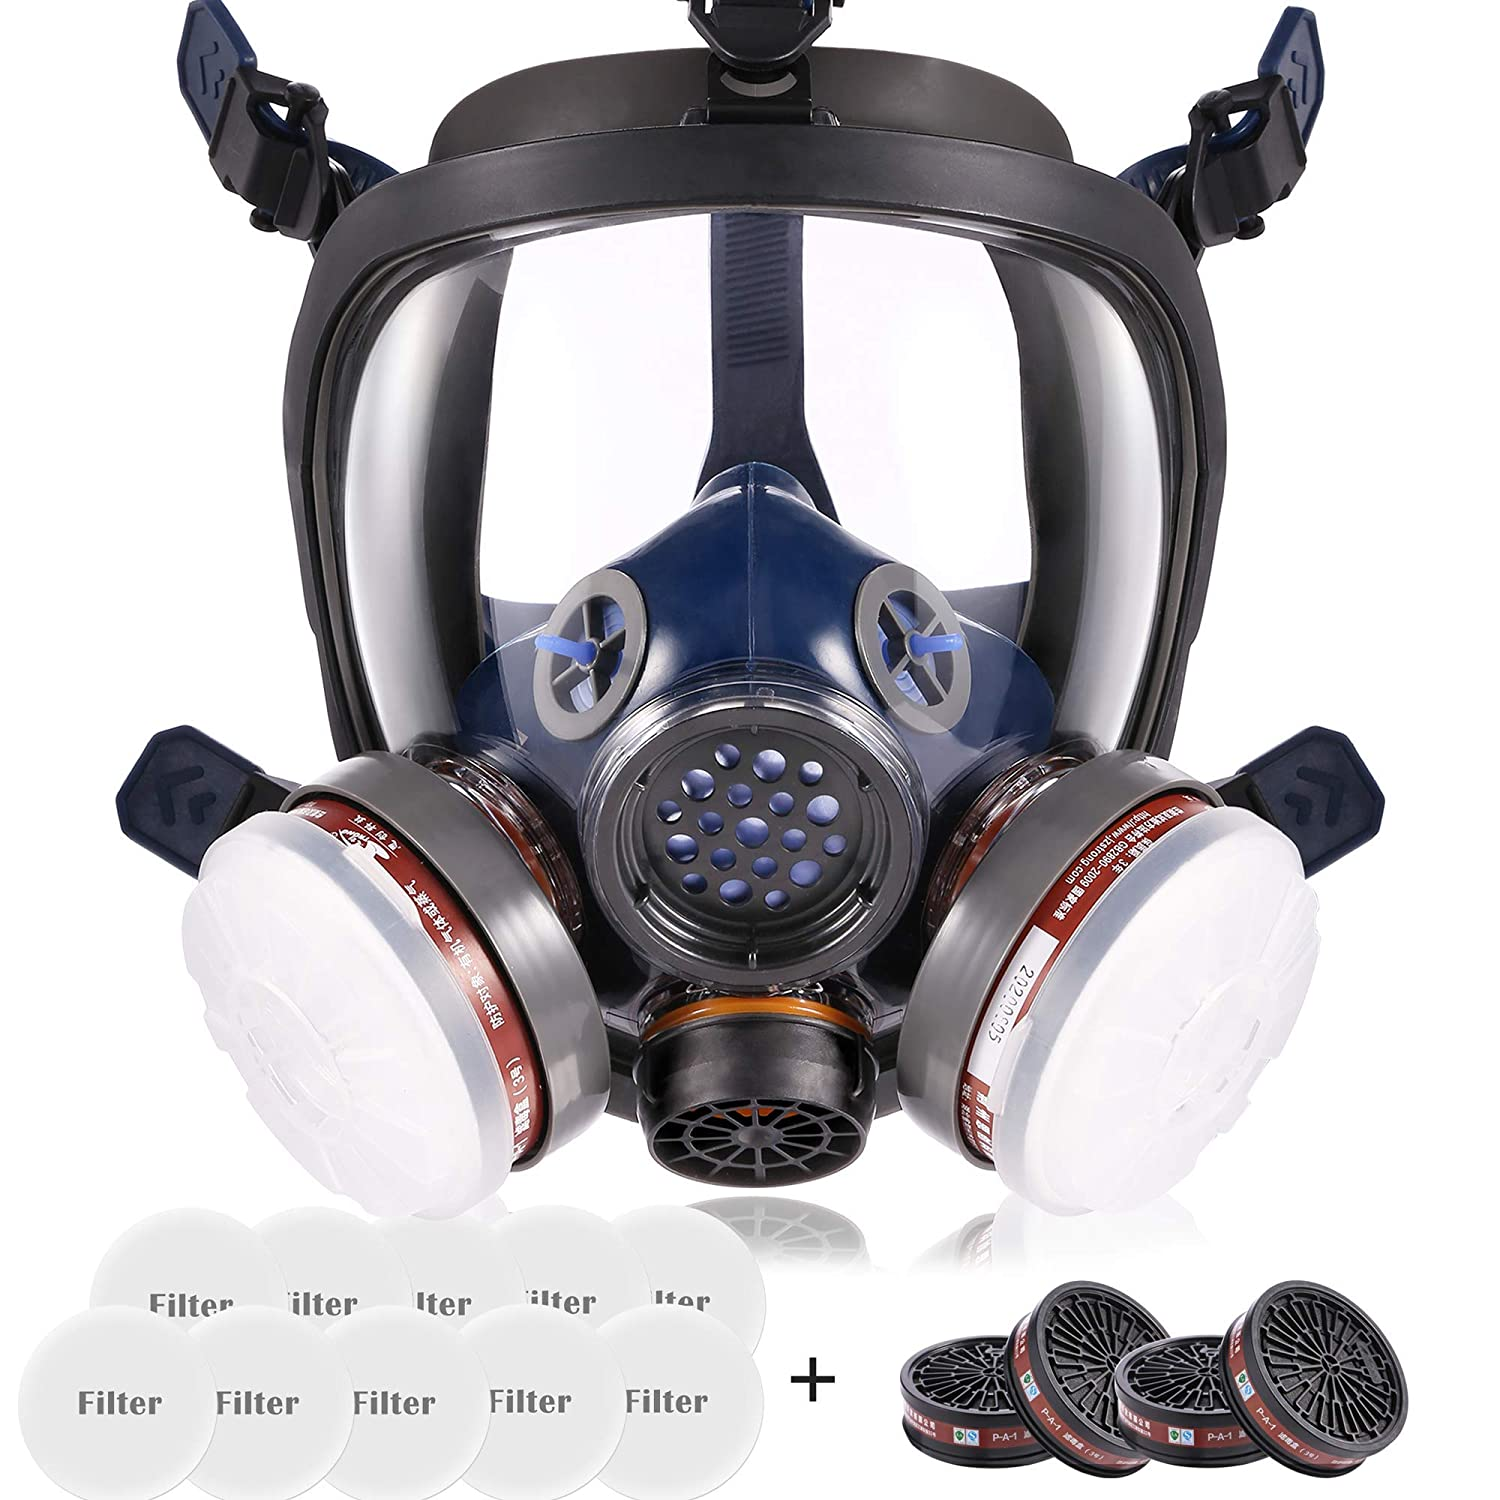 17 in1 Full Face Respirator works for shipfree Painting sale